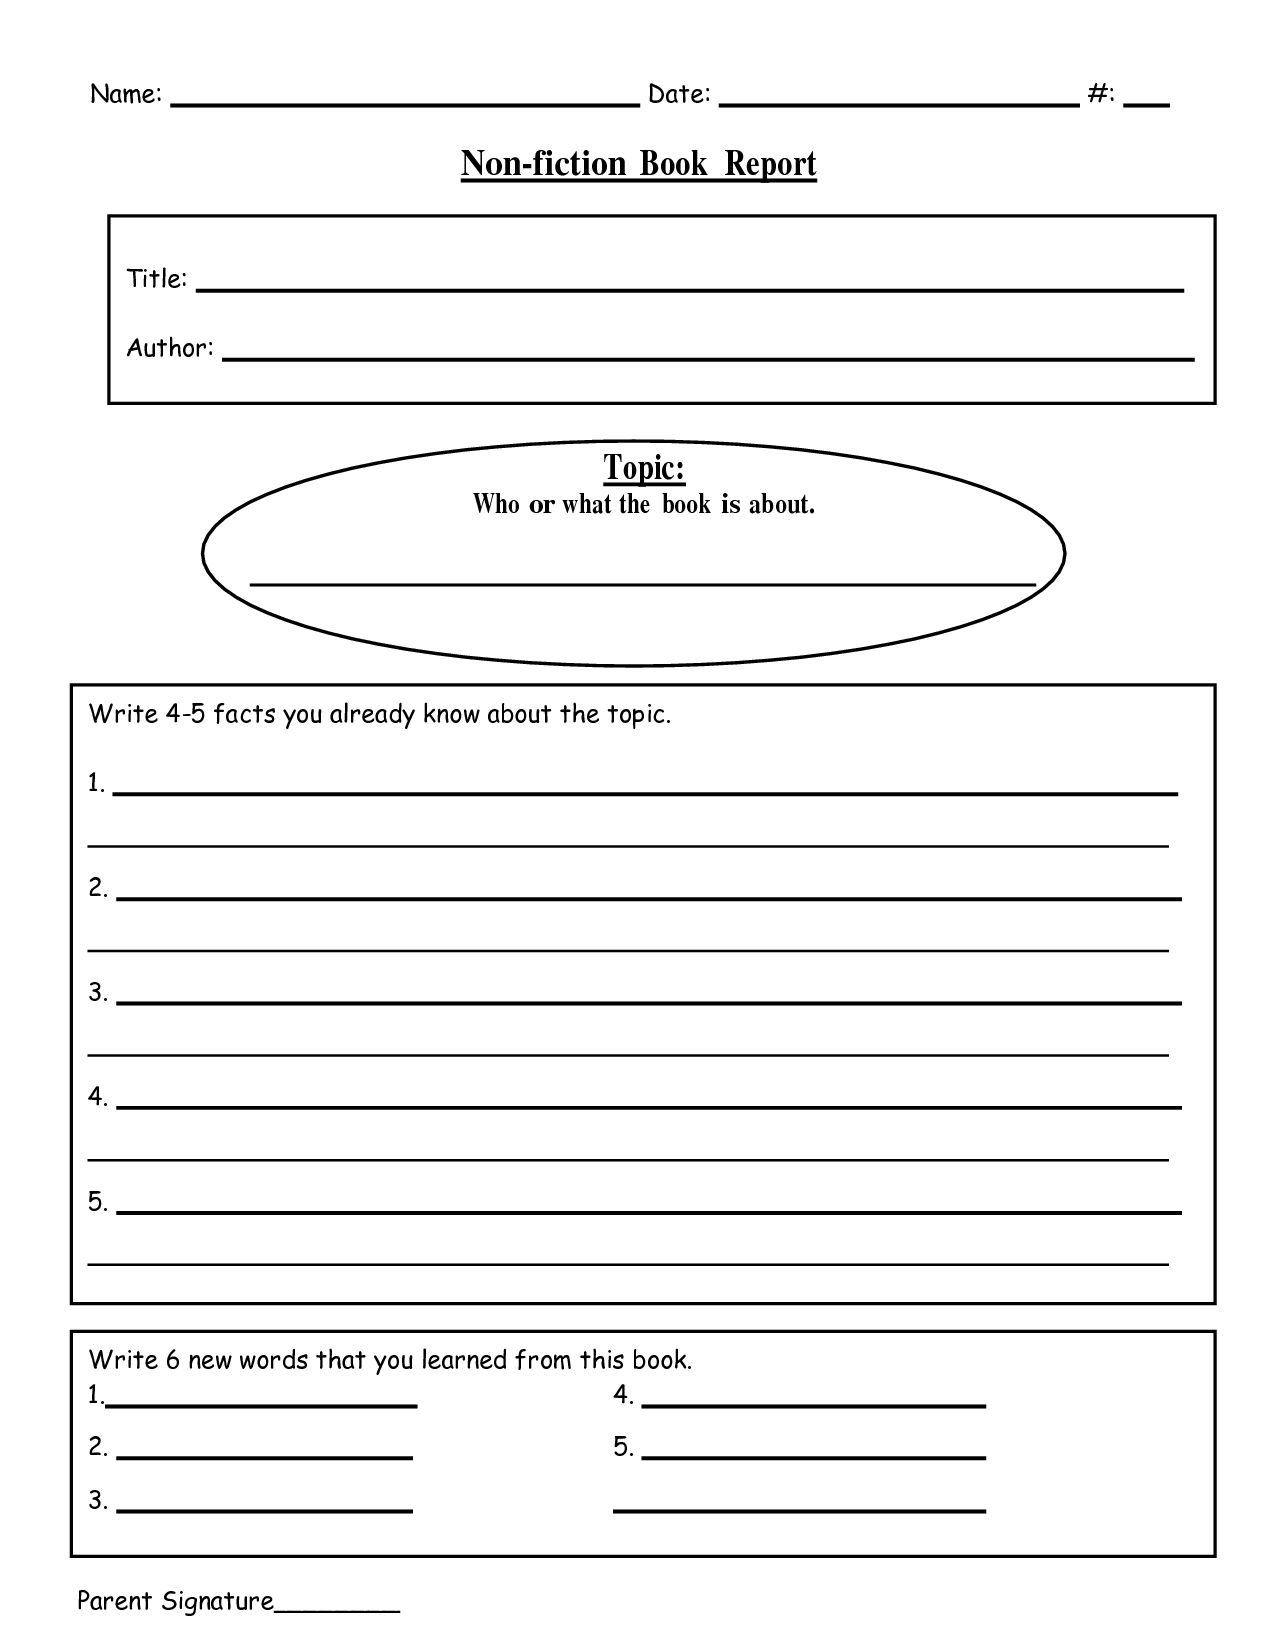 Free Printable Book Report Templates | Non-Fiction Book Report.doc - Free Printable Stories For 4Th Graders